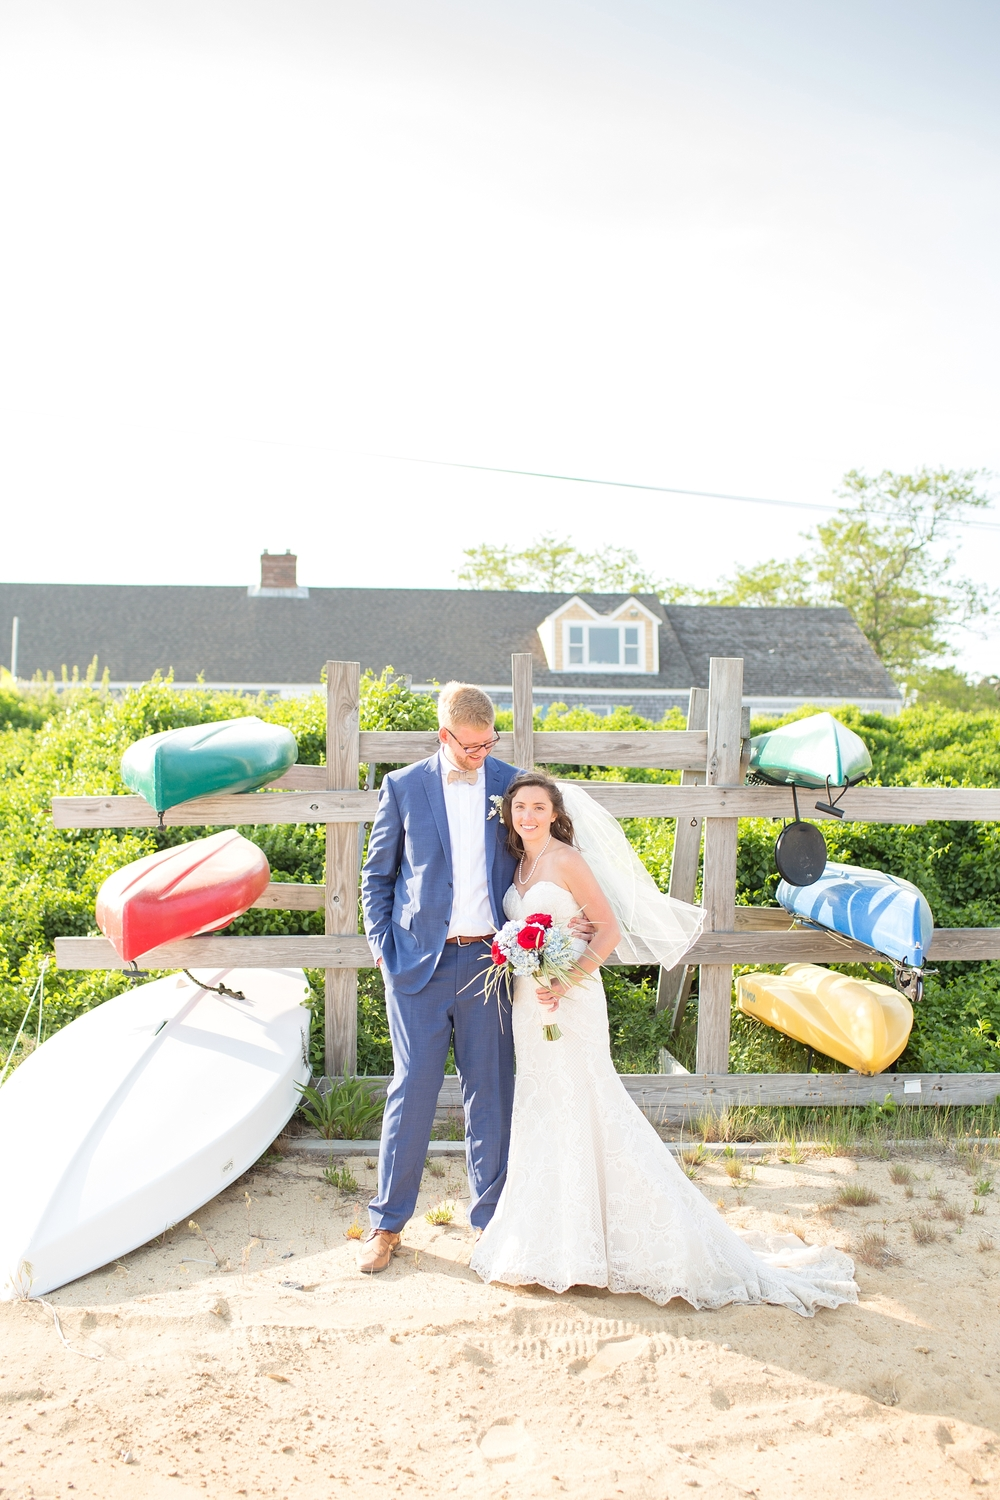 Goodman 3-Bride & Groom Portraits-784_anna grace photography wellfleet cape cod massachusetts destination wedding photographer Chequessett Yacht and Country Club wedding photo.jpg